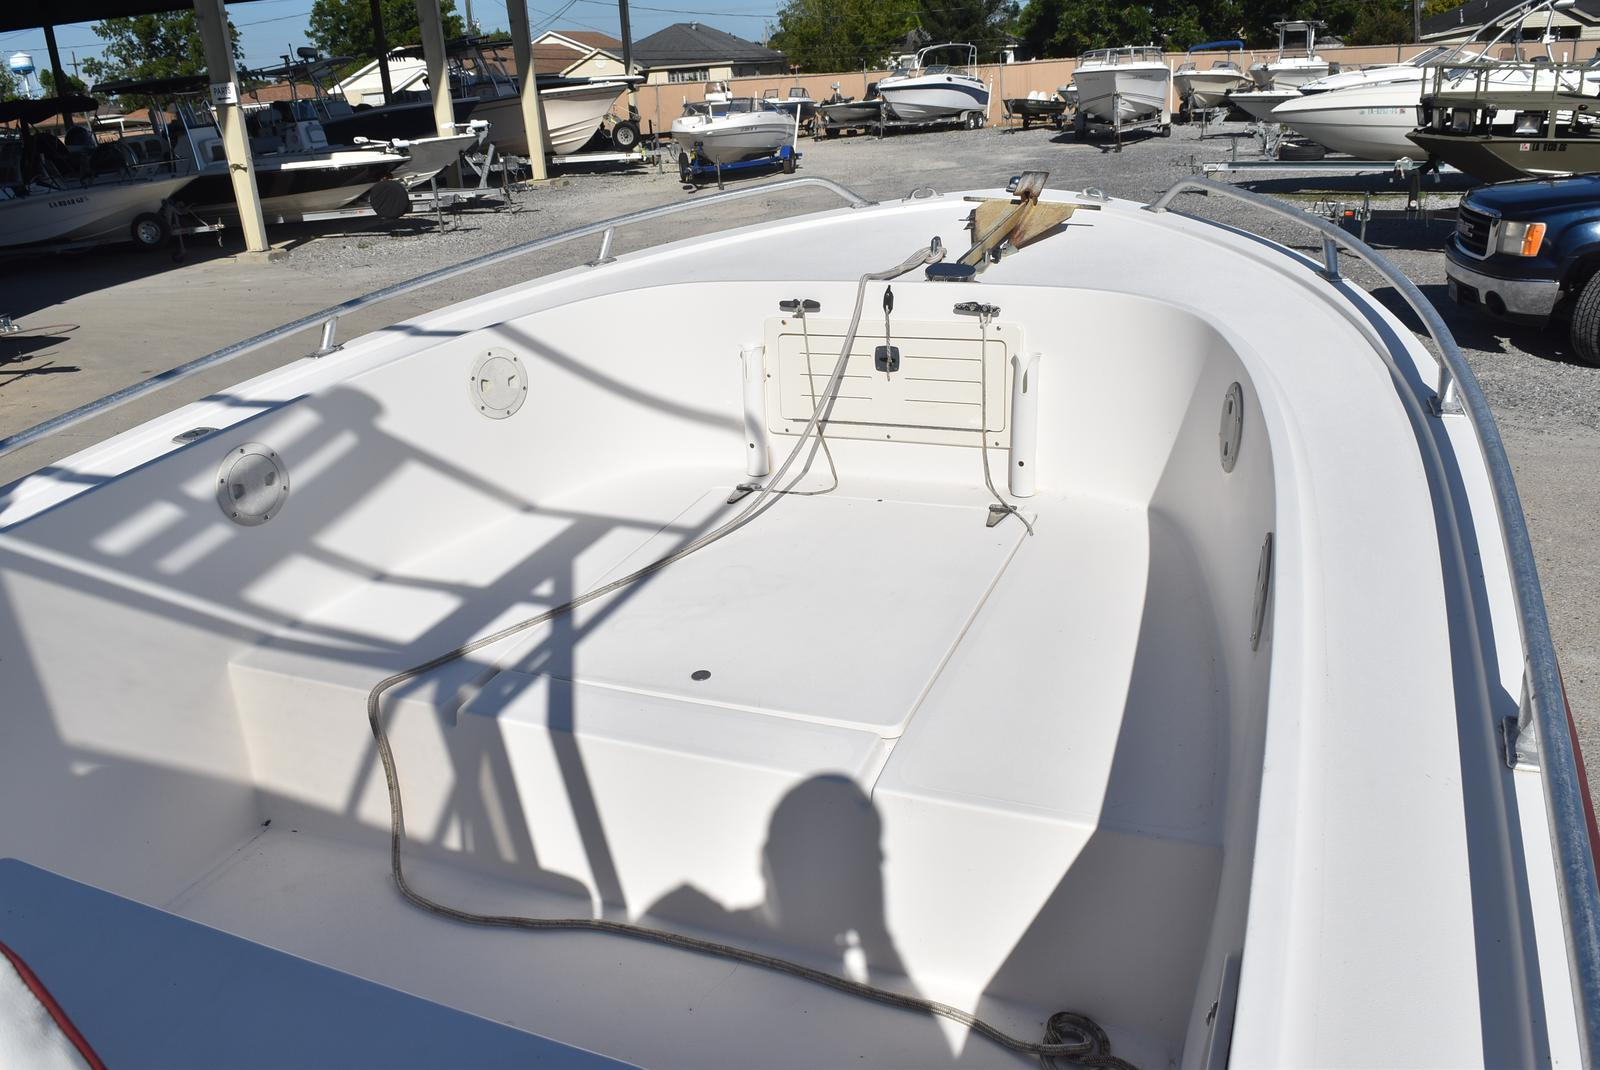 1996 Mako boat for sale, model of the boat is 22 Mako & Image # 10 of 26